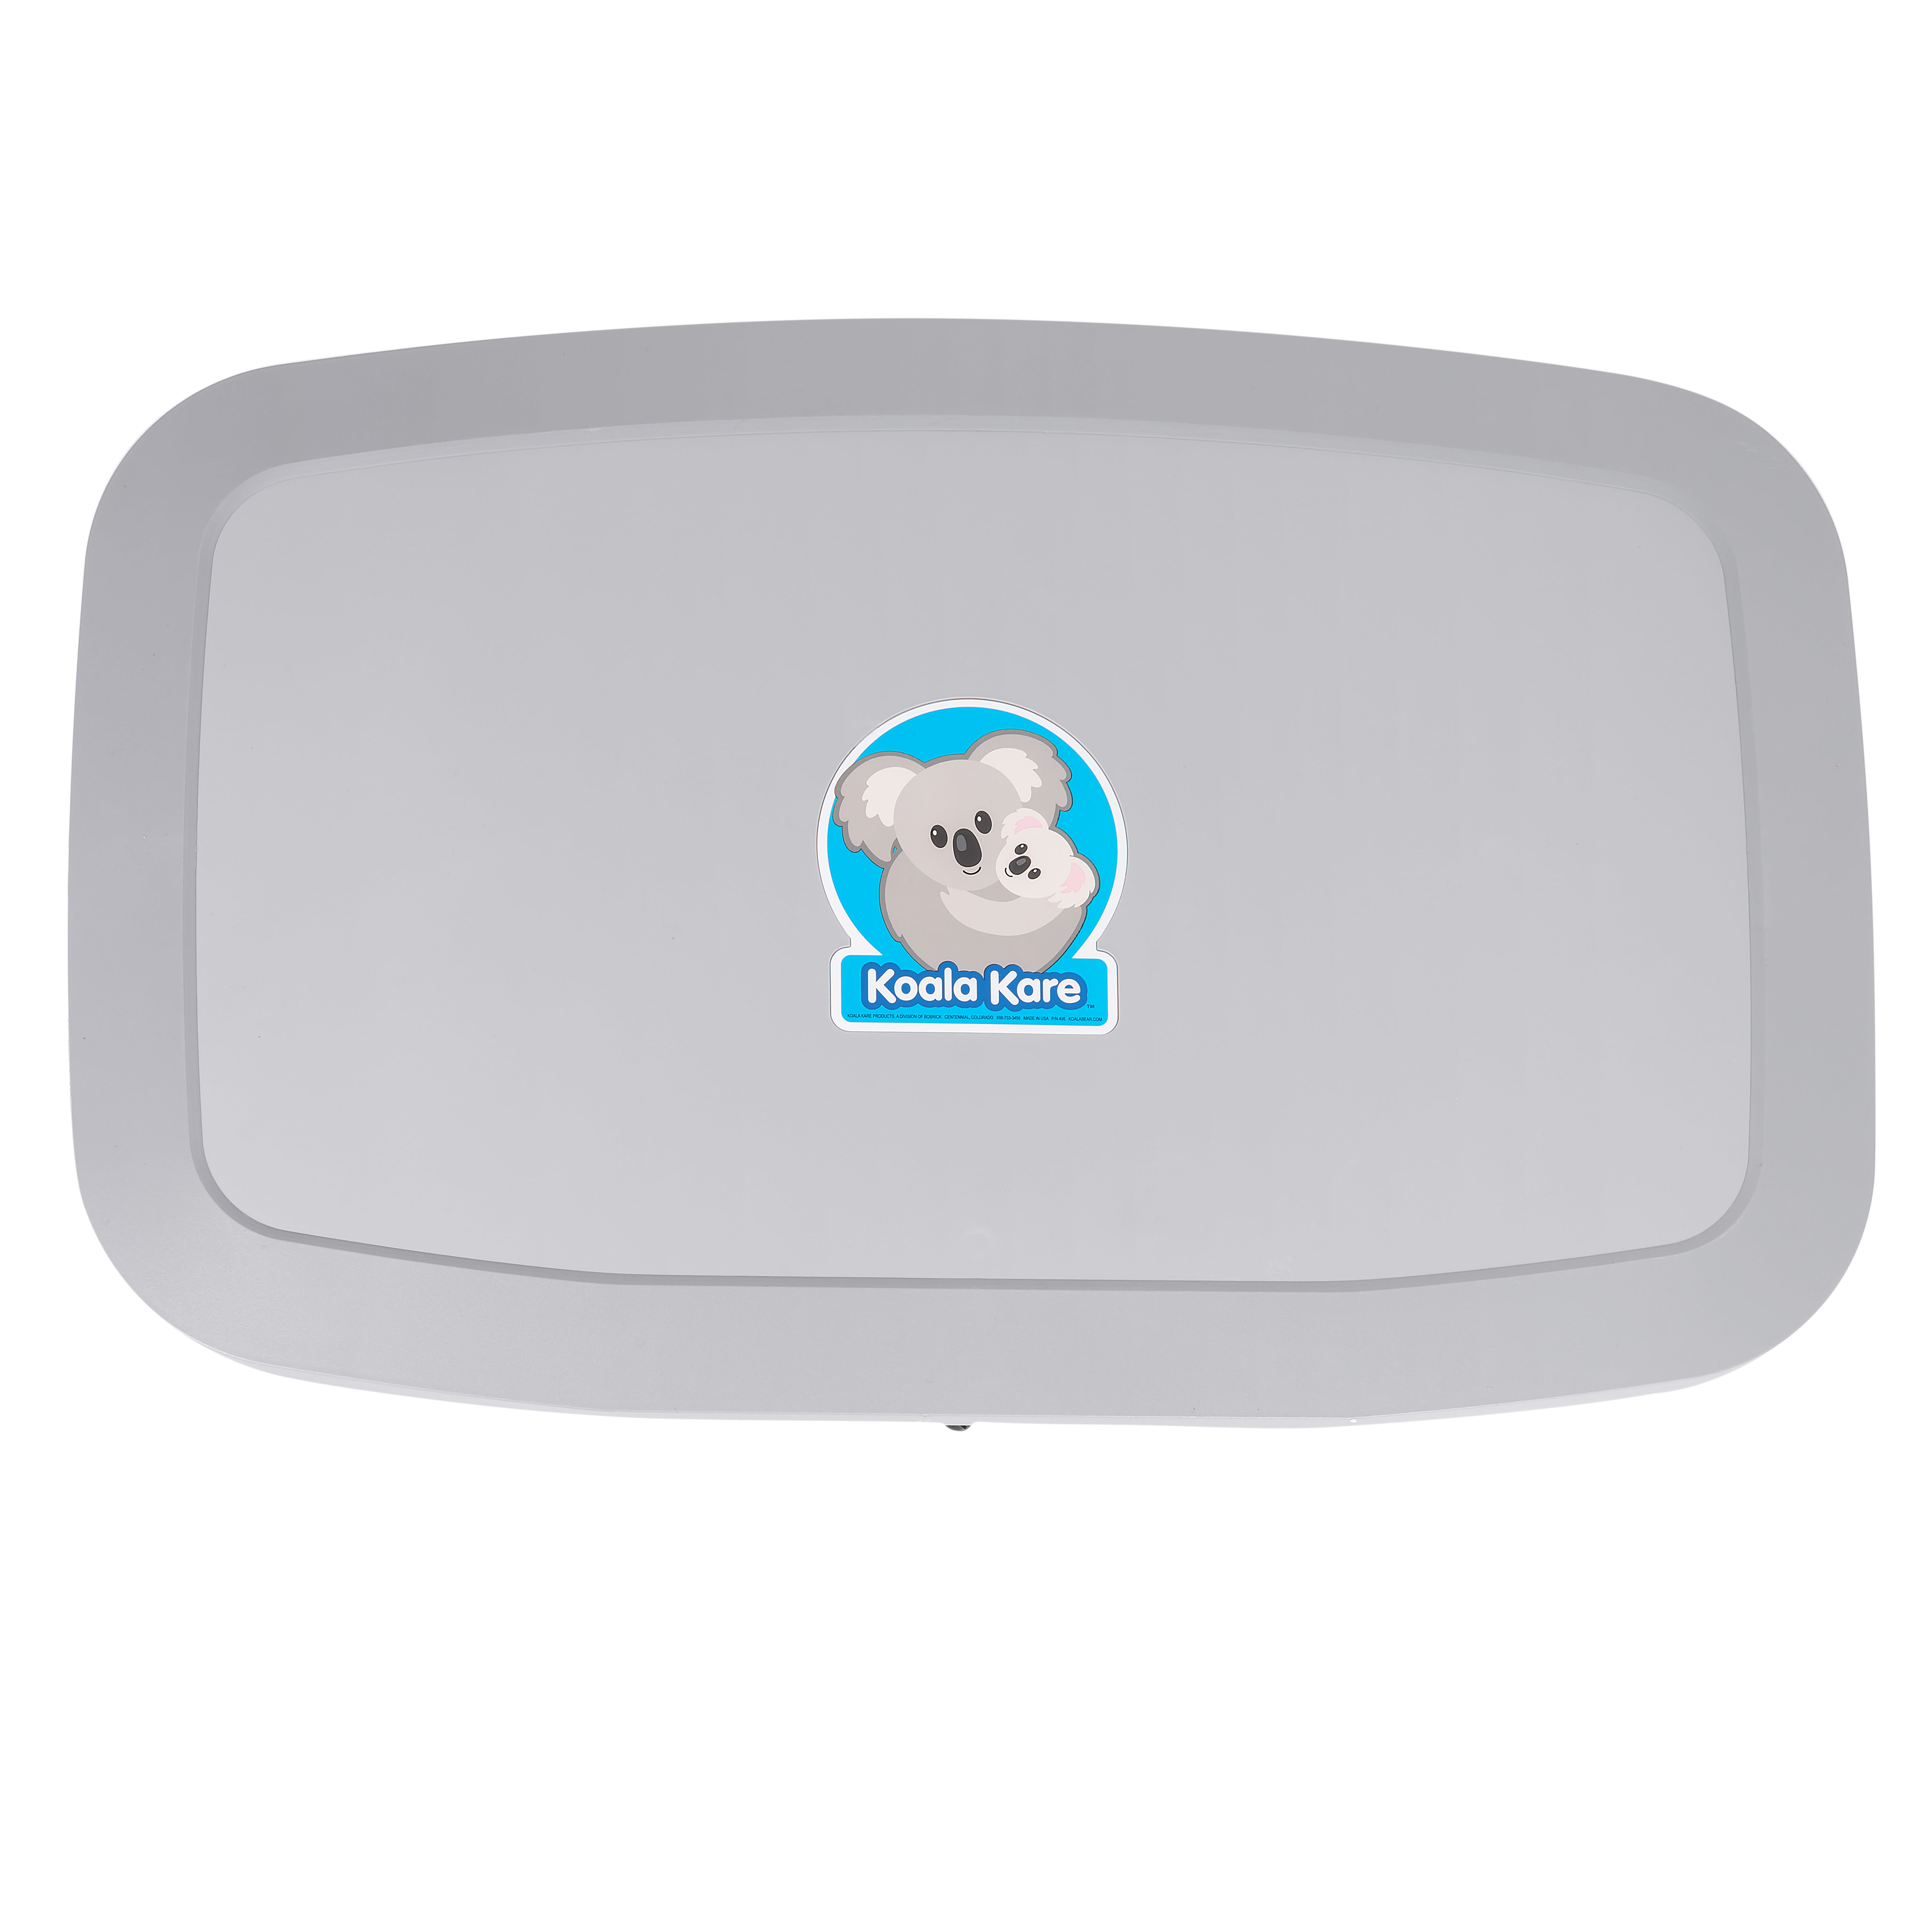 Koala Kare KB200-01 Horizontal Wall-Mounted Changing Station - Polypropylene, Gray